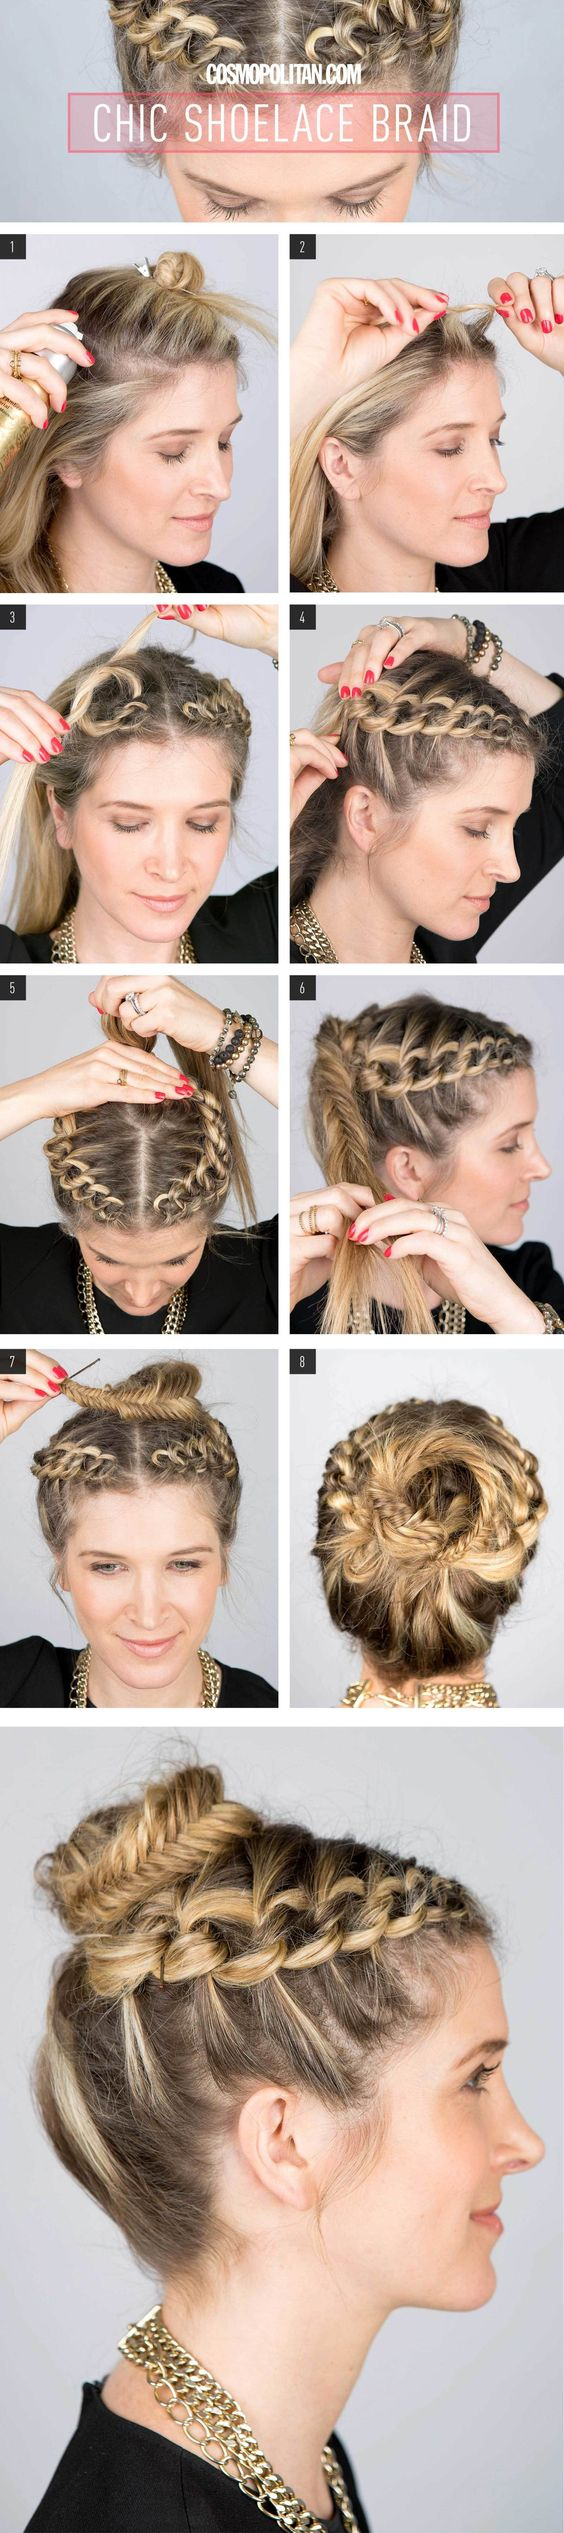 Hair+How-To:+Chic+Shoelace+Braid  - Cosmopolitan.com